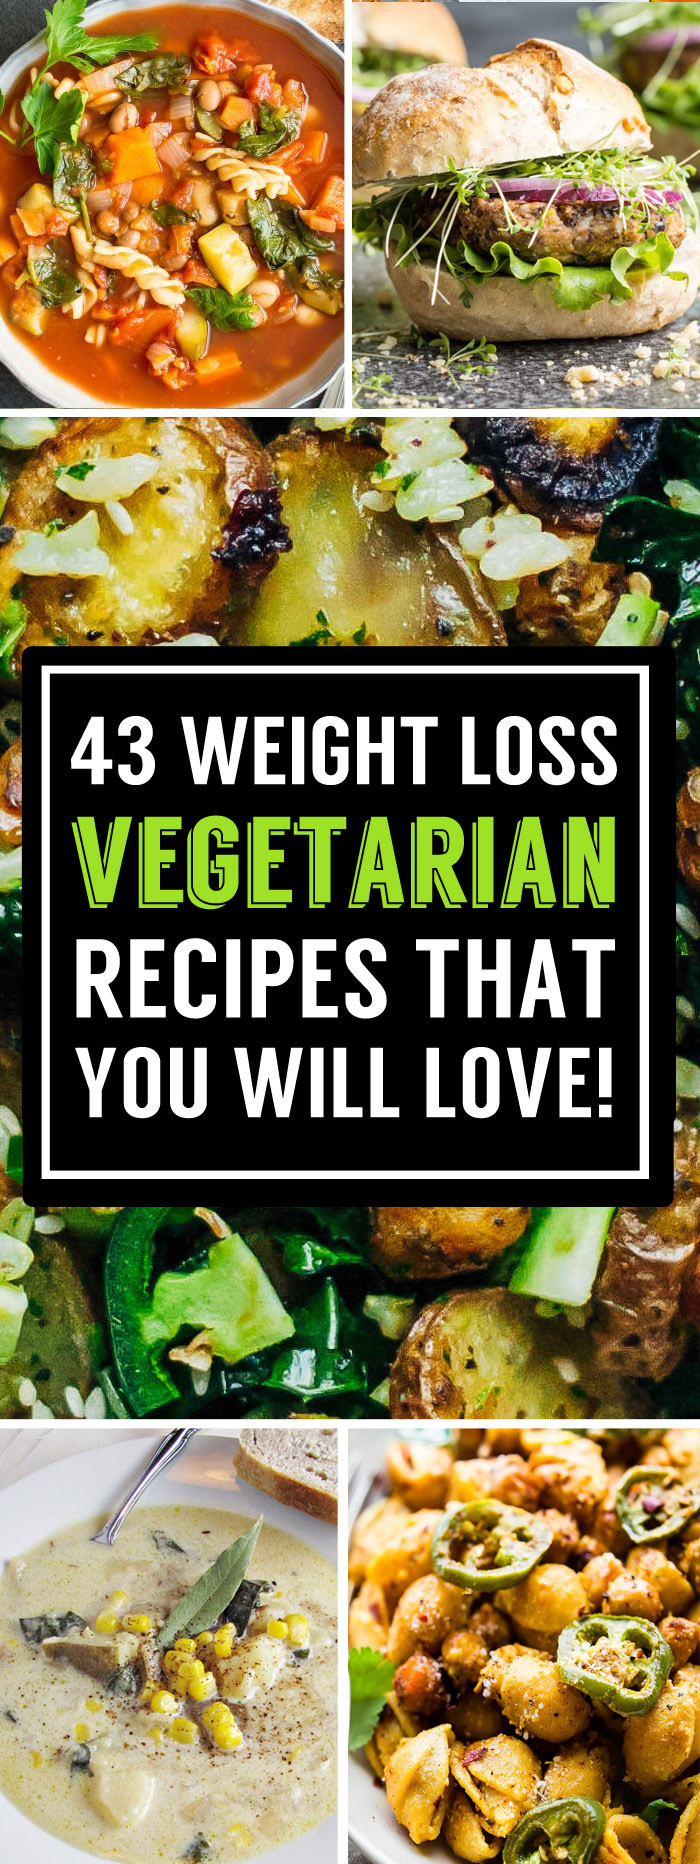 Healthy Vegetarian Recipes For Weight Loss  43 Delicious Ve arian Recipes That Can Help Boost Your